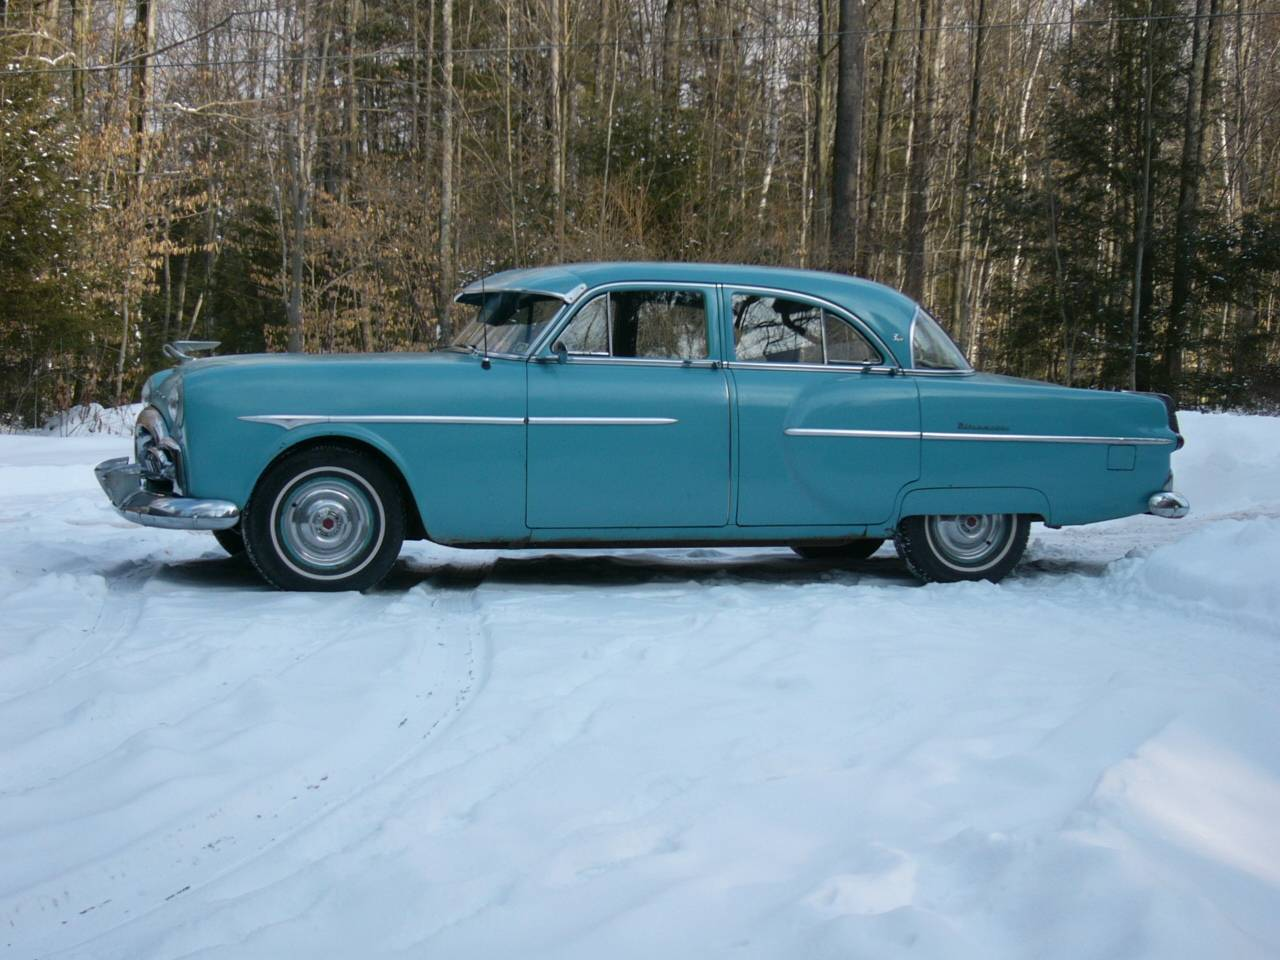 '51 Packard 300 in winter '14